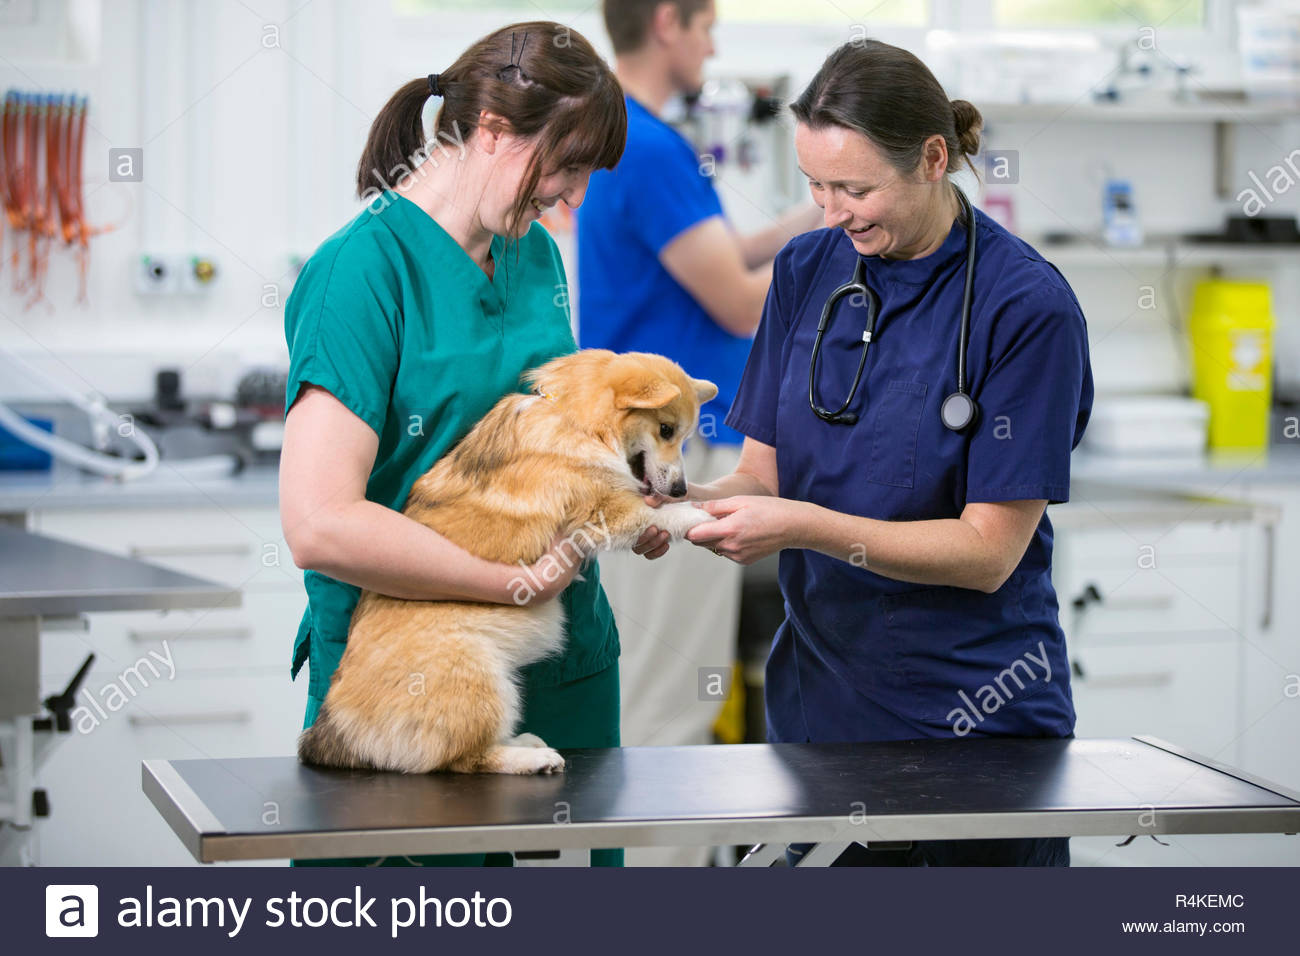 Nurse and vet examining pet dog on table in vet surgery - Stock Image